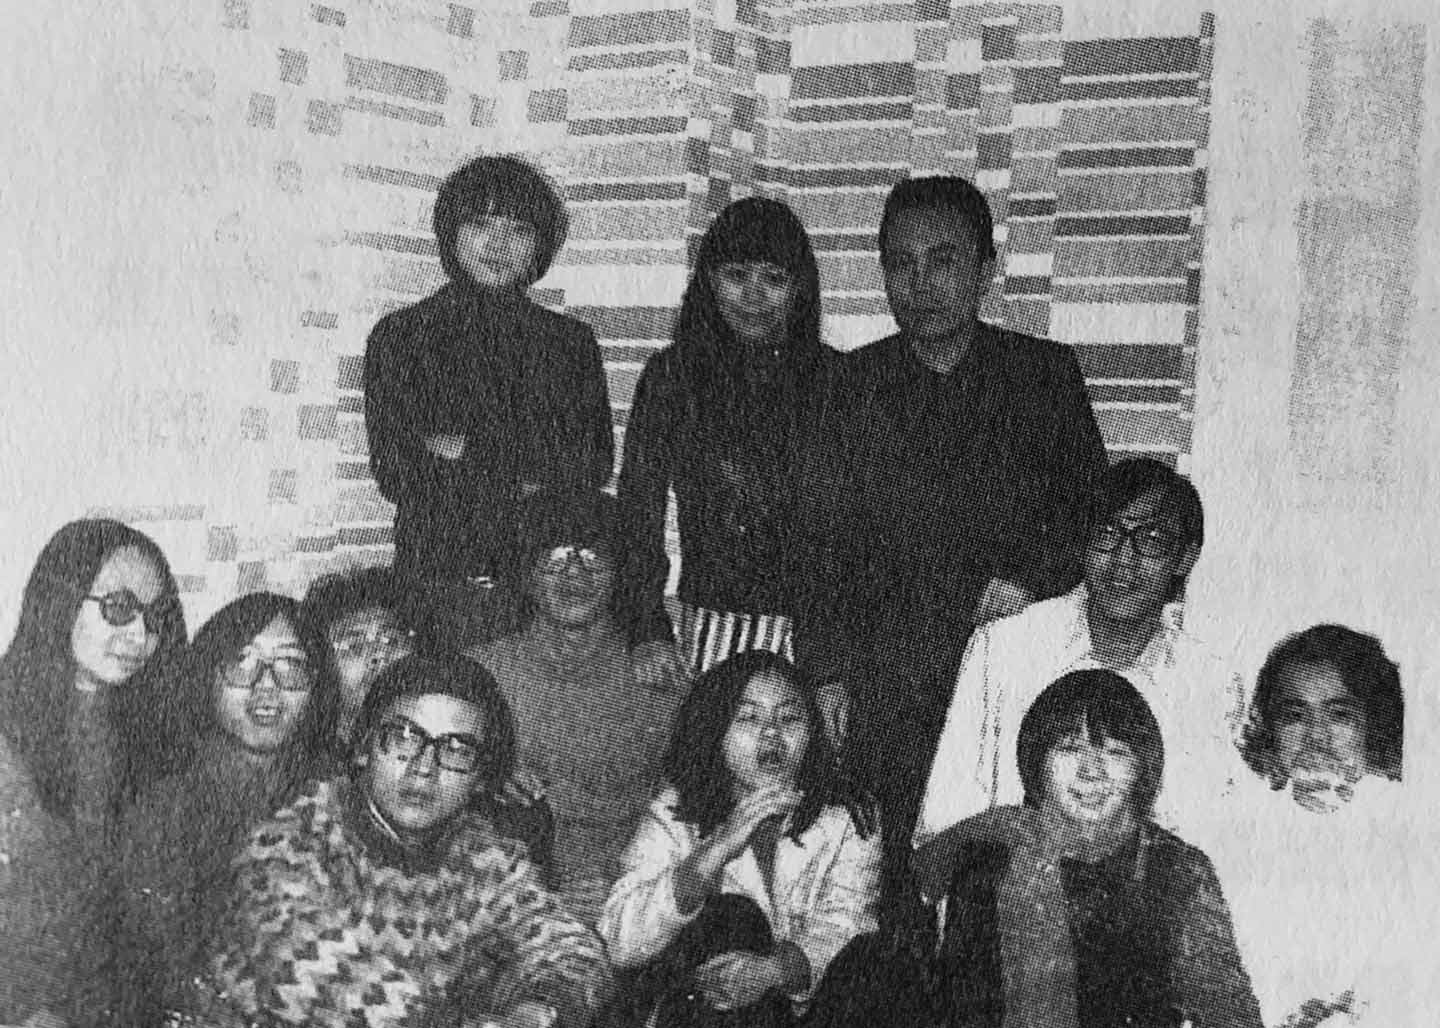 Members of the 70's Biweekly collective